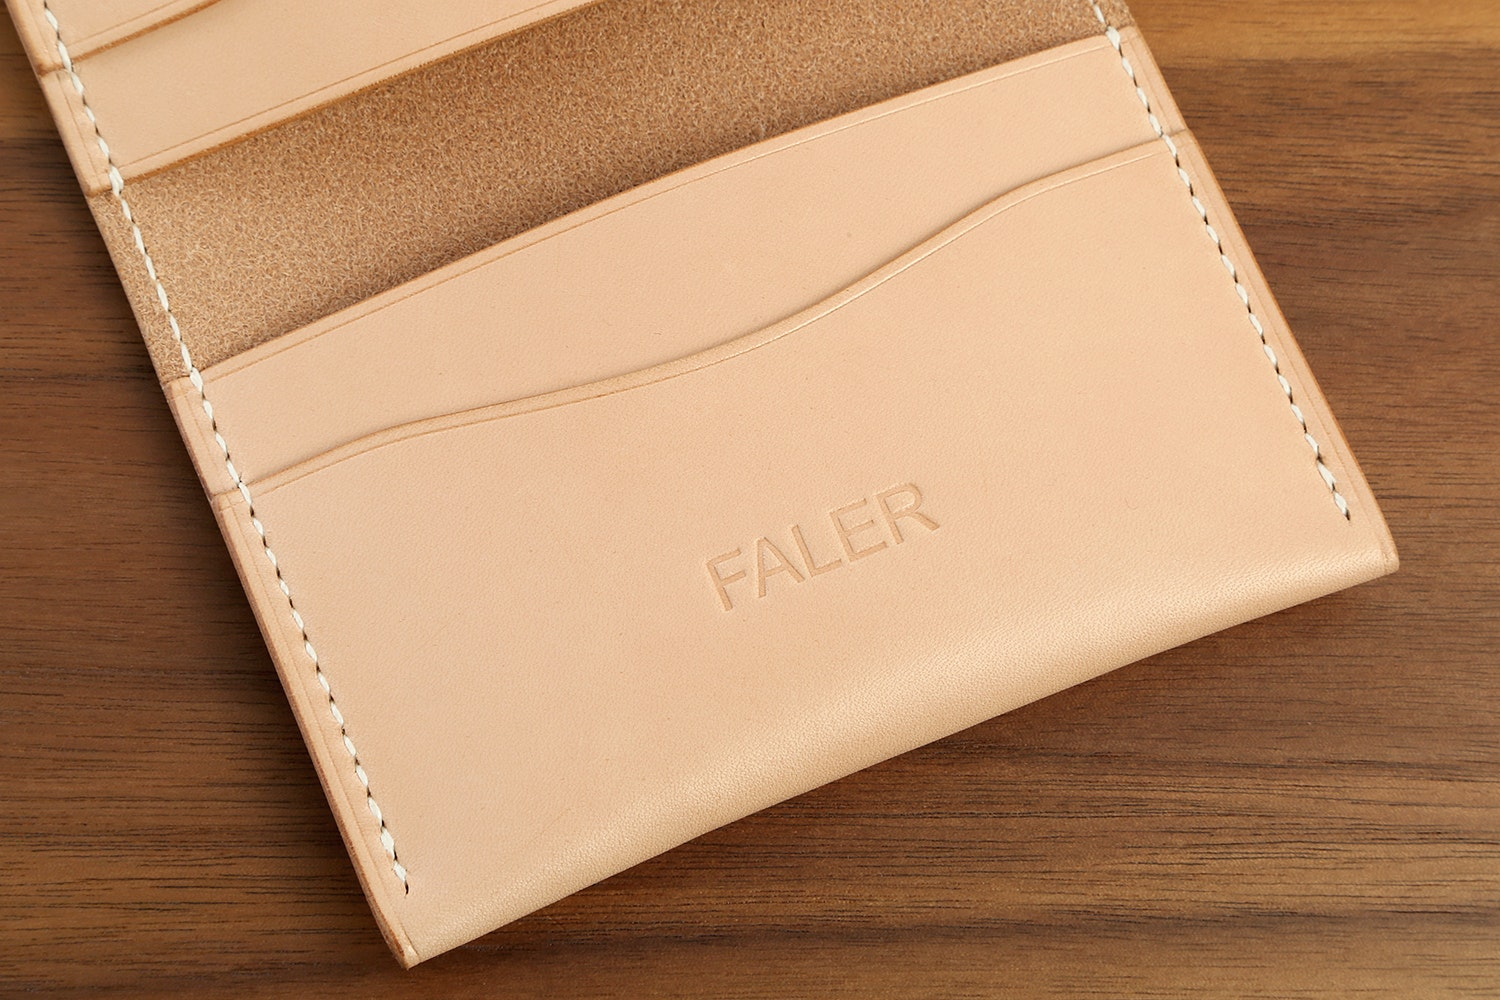 Faler Four-Pocket Wallet